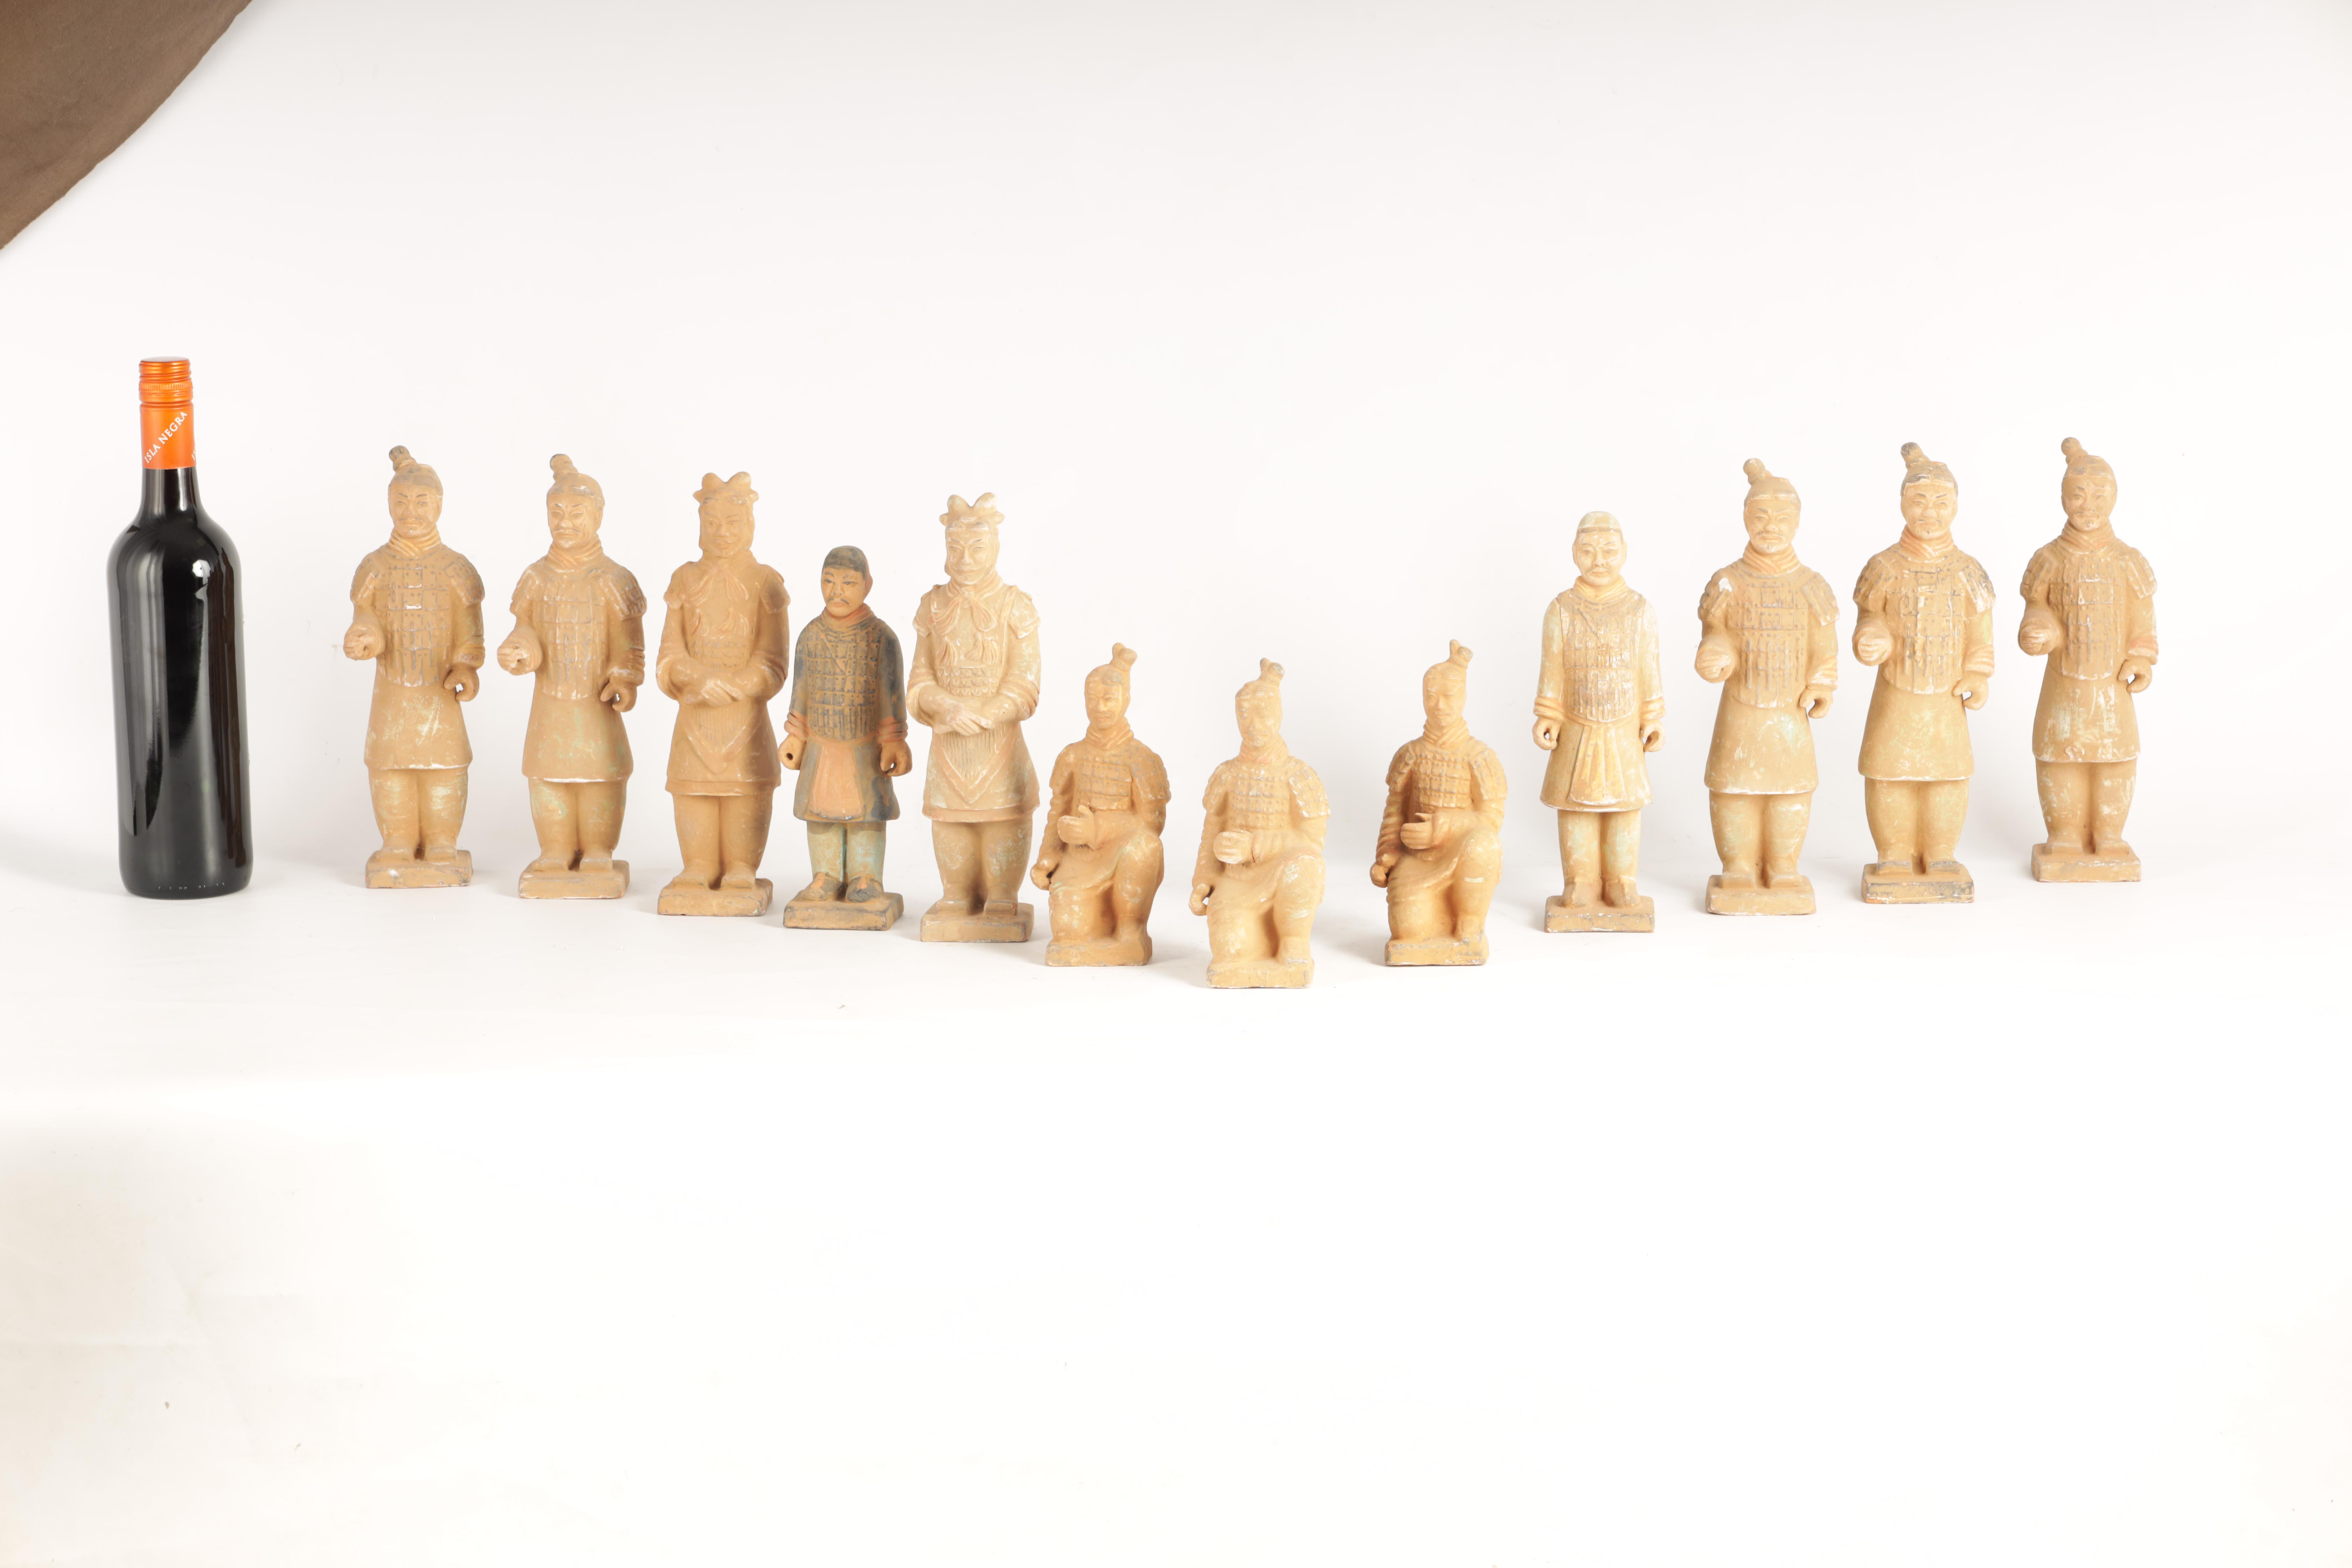 A SET OF 12 20TH CENTURY CHINESE FIGURES MODELLED AS THE TERRACOTTA ARMY depicting soldiers in - Image 7 of 7